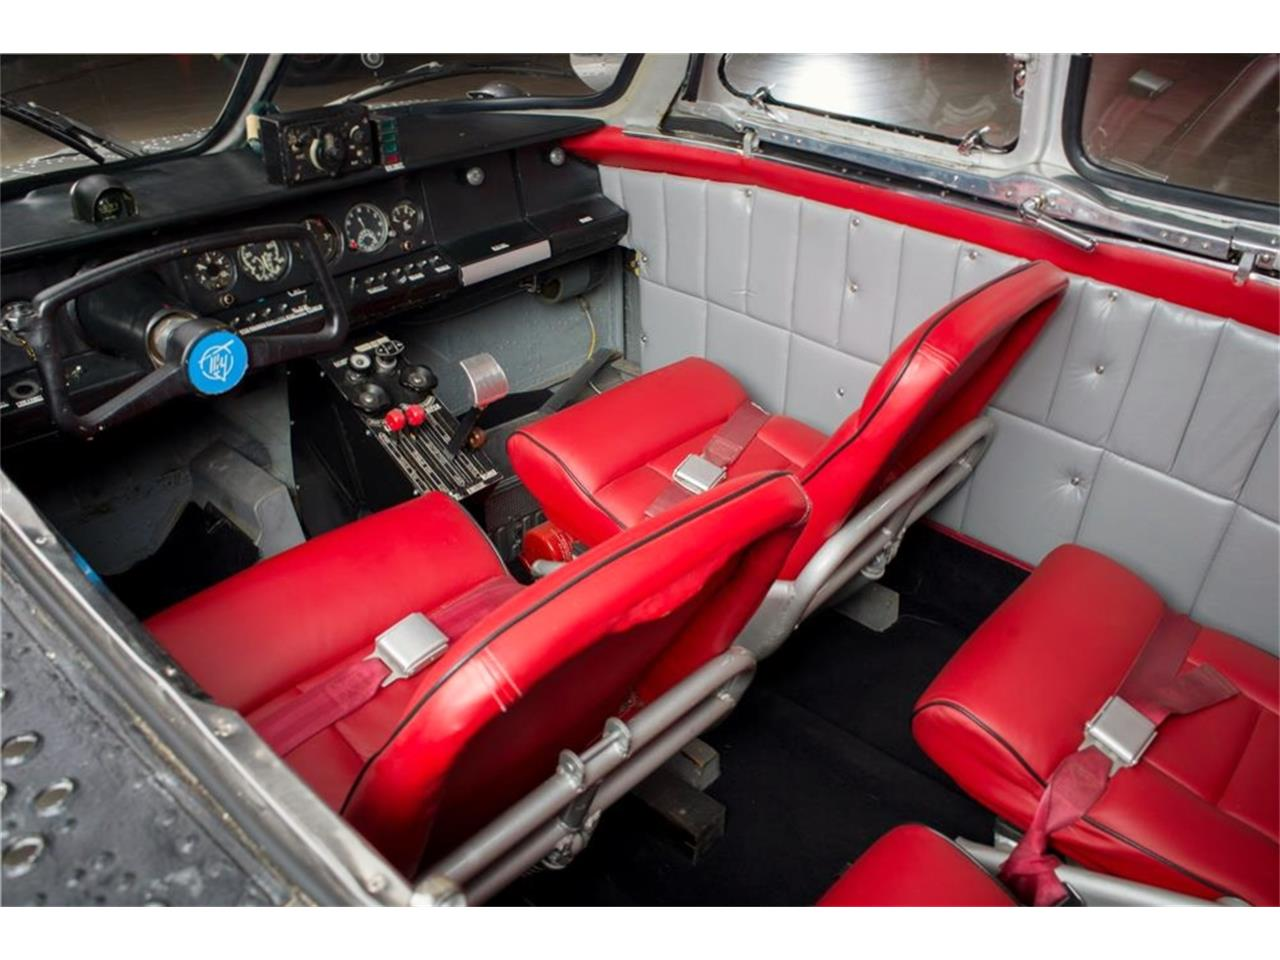 Large Picture of '78 Tupolev N007 located in Atlanta Georgia - $250,000.00 - DAJC